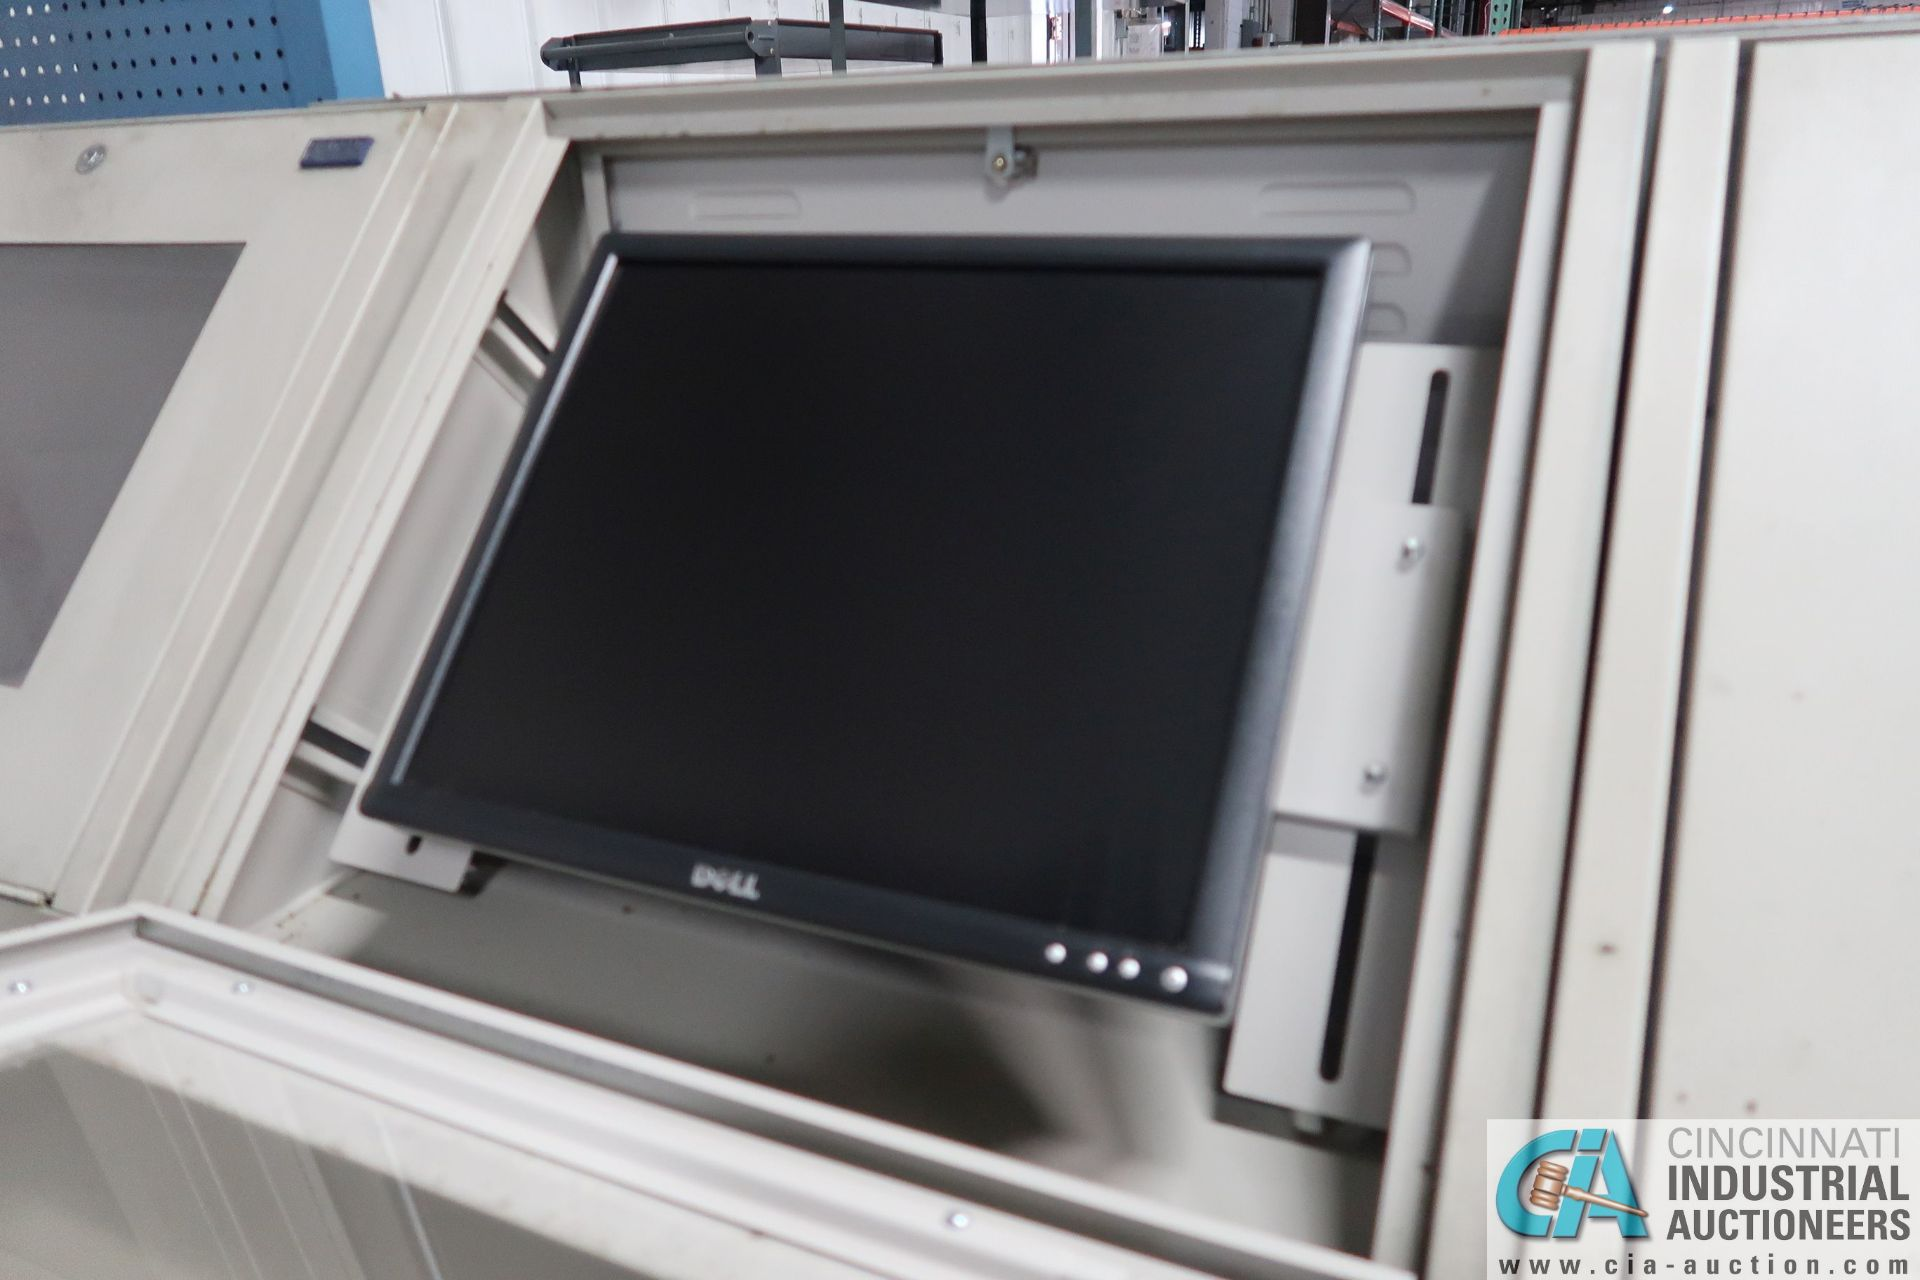 GLOBAL PORTABLE COMPUTER WORKSTATIONS WITH DELL FLAT SCREEN - Image 2 of 5